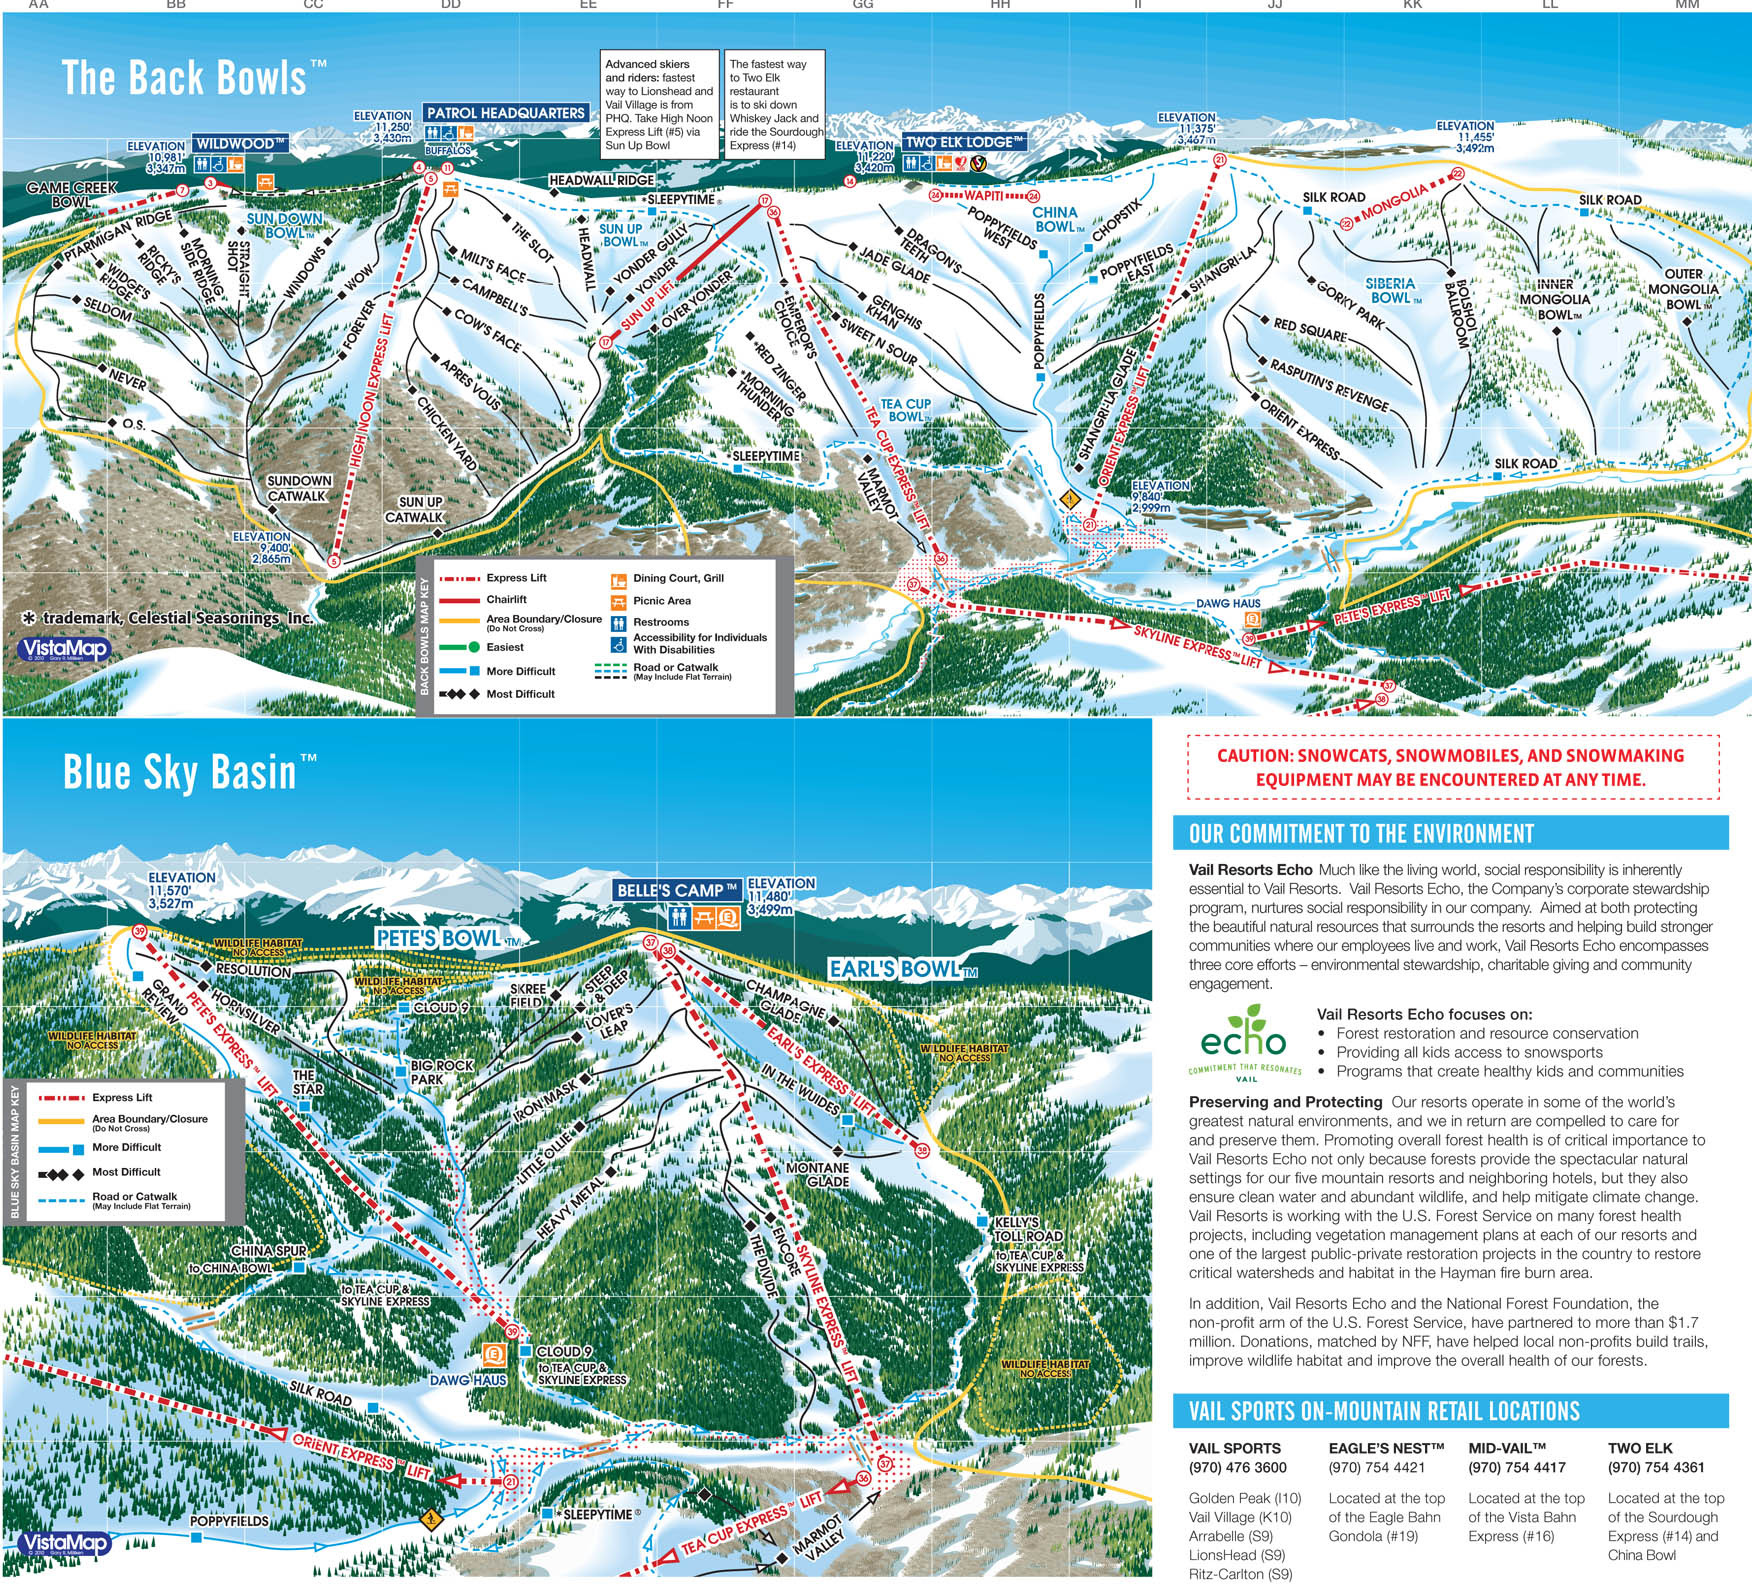 Vail Trail Map | Vail Ski Area Piste Map - My Chalet Finder on map of arapahoe basin colorado, map of silver plume colorado, map of ute pass colorado, map of denver colorado, map of cherry hills colorado, map of a-basin colorado, map of battlement mesa colorado, vail back bowls trail map colorado, map of eagle colorado, map of cheyenne wells colorado, map of stratton colorado, map of olathe colorado, map of the western slope colorado, map of holly colorado, map of monarch pass colorado, map of flagler colorado, map of camp hale colorado, map of arriba colorado, large map of colorado, map of severance colorado,